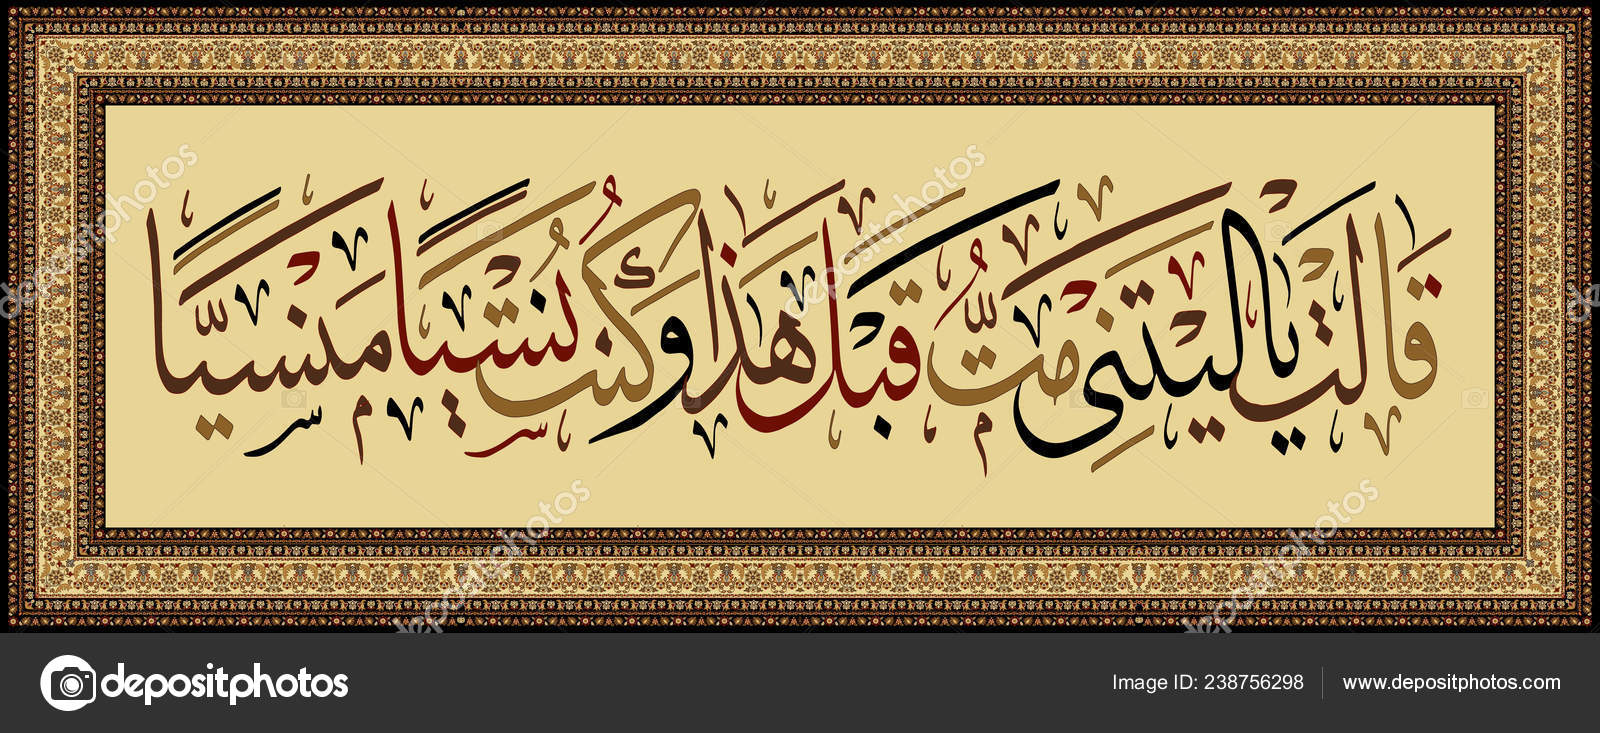 Surah maryam image | Islamic calligraphy from the Quran